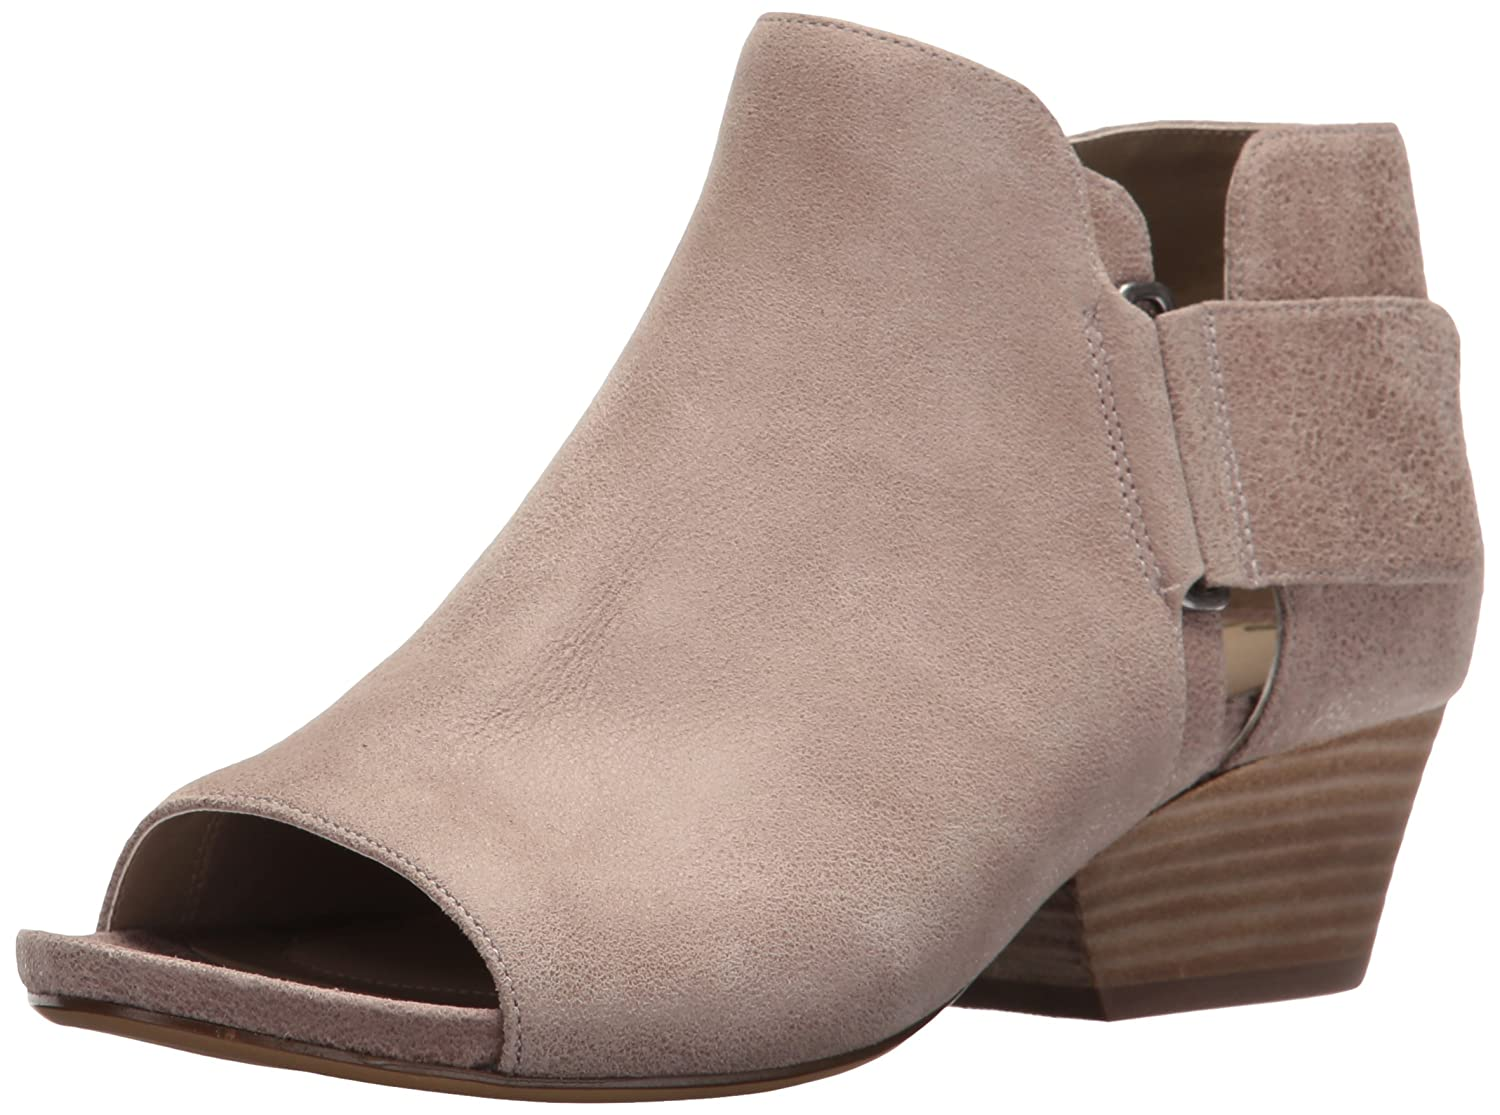 Naturalizer Women's Gemi Ankle Bootie B01I2MAOKS 8.5 B(M) US|Grey